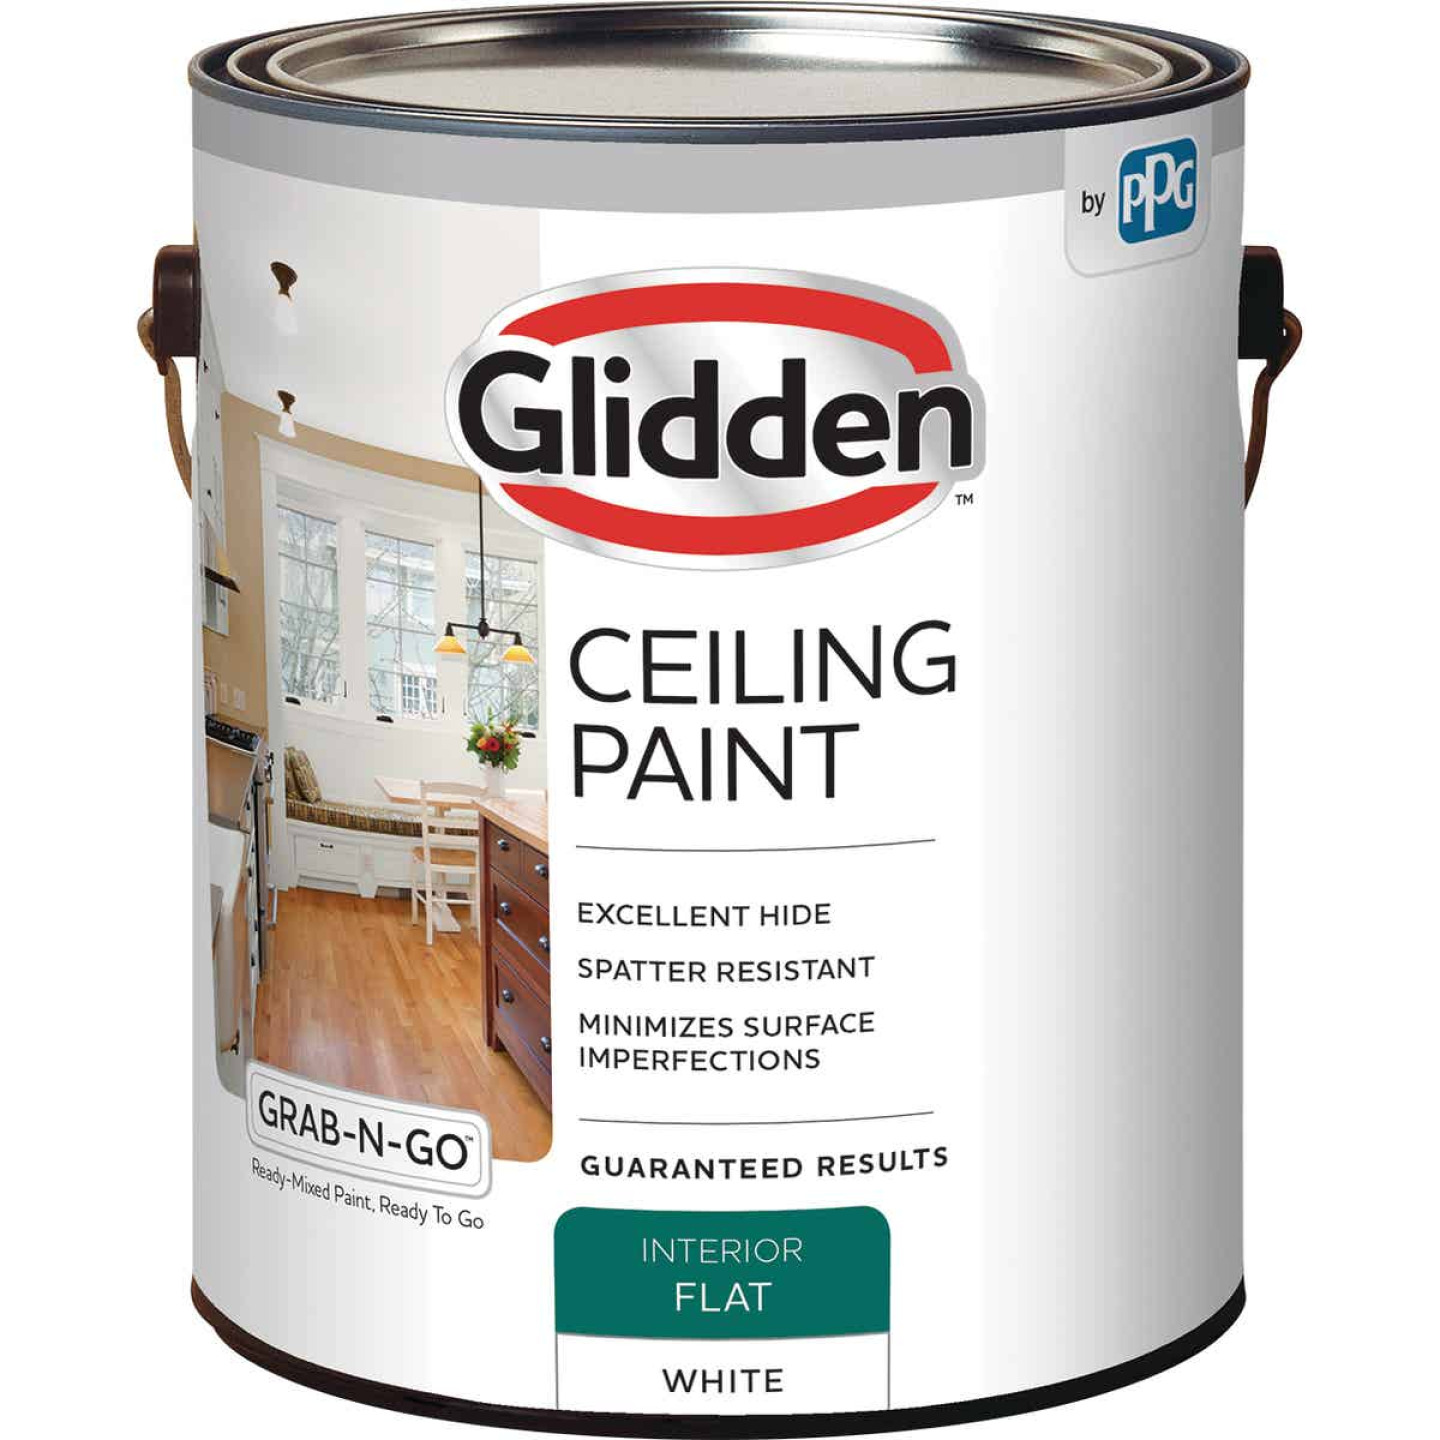 Glidden 1 Gal. Interior Flat Ceiling Paint Image 1